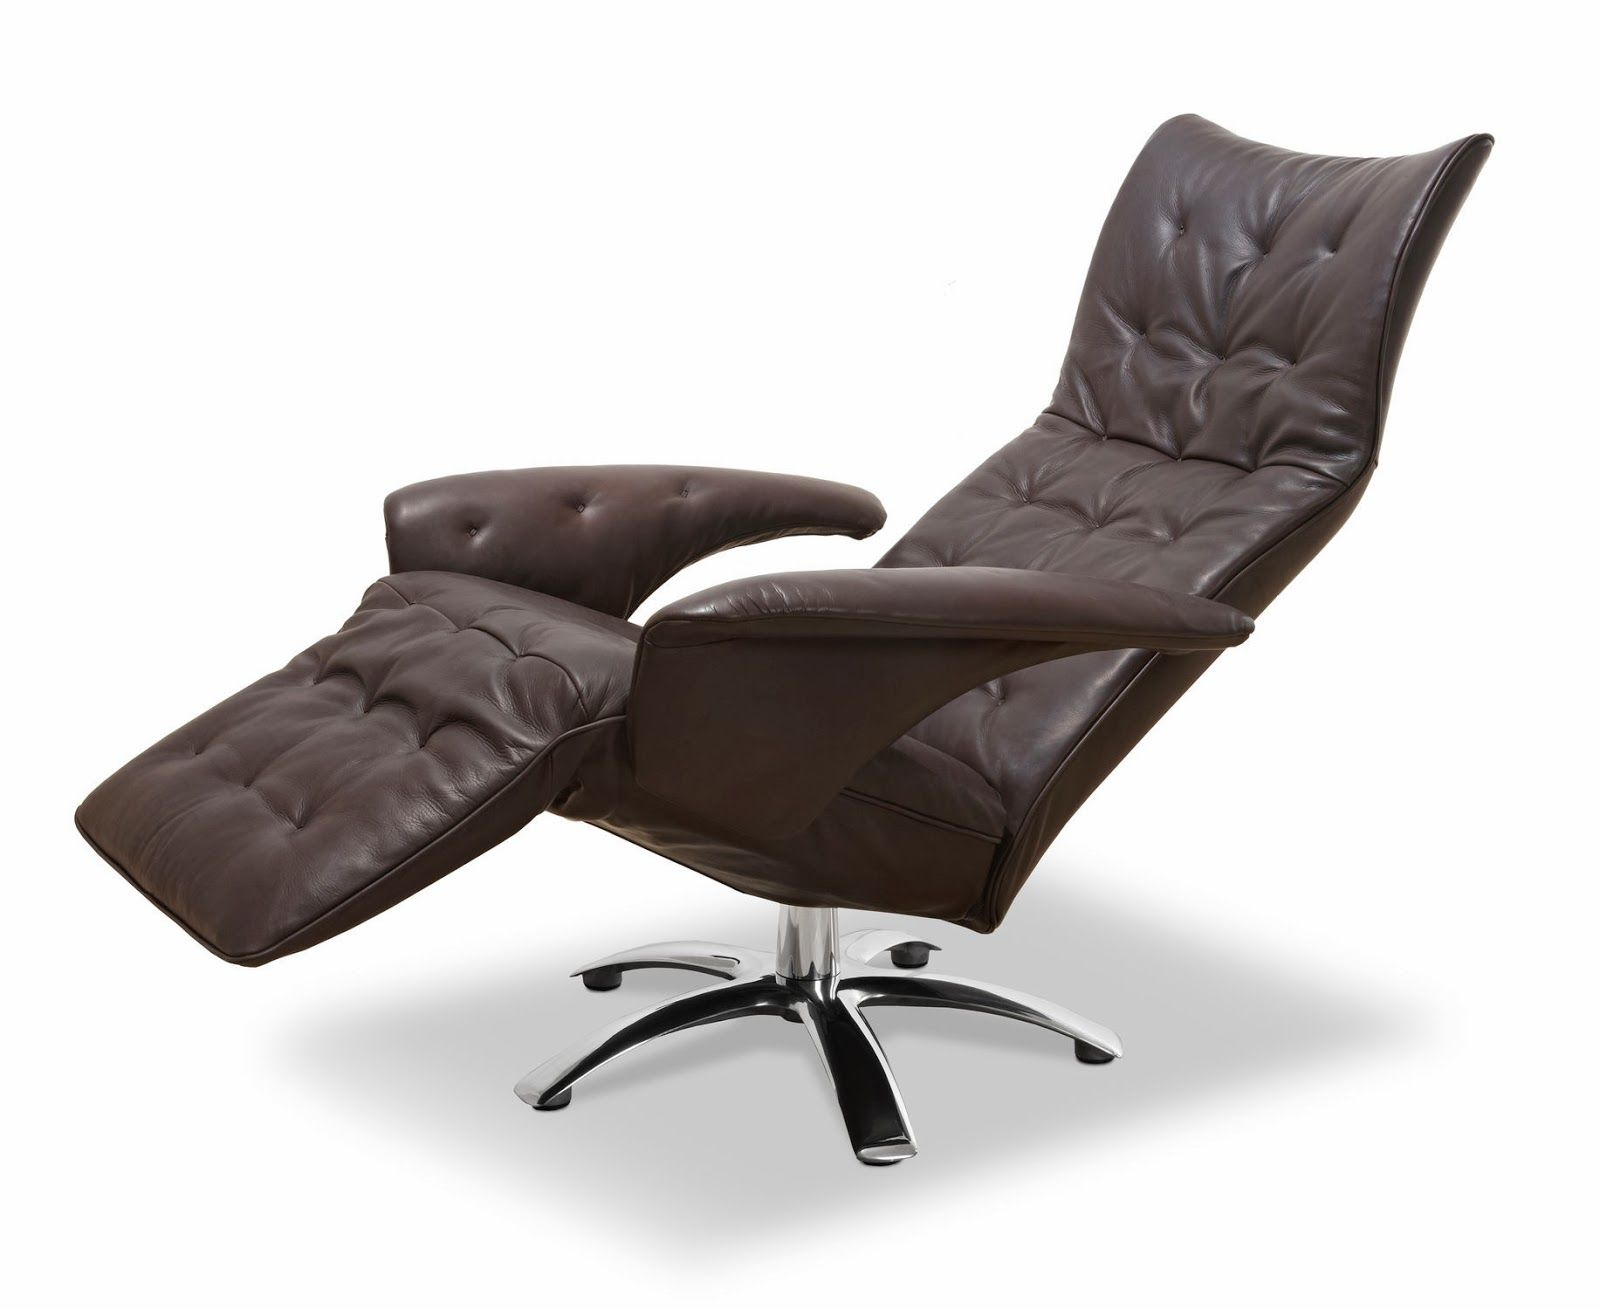 Furniture Modern Recliner Chair Design With Brown Leather Modern